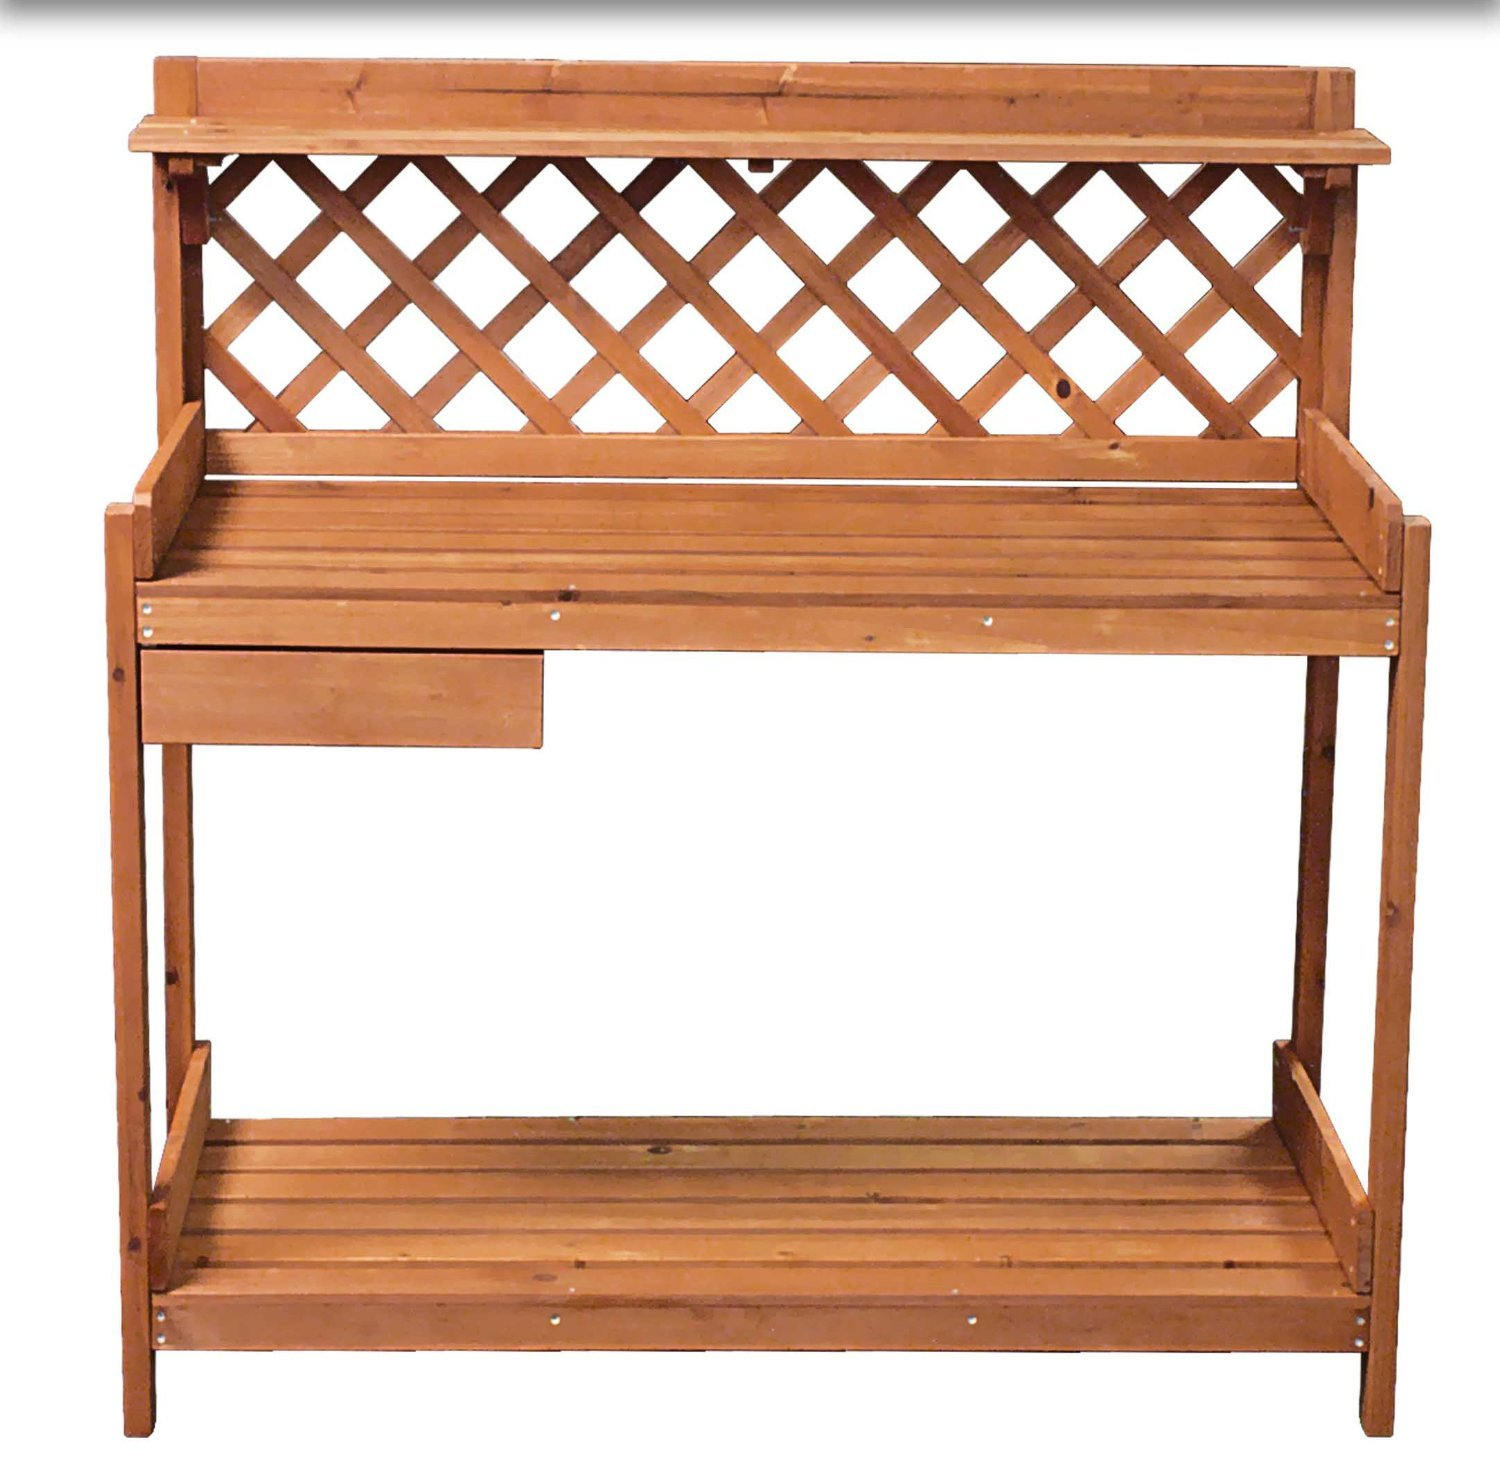 EWEI'S Homewares Outdoor Garden Potting Bench Station Potters Bench Garden Potting Tools Area